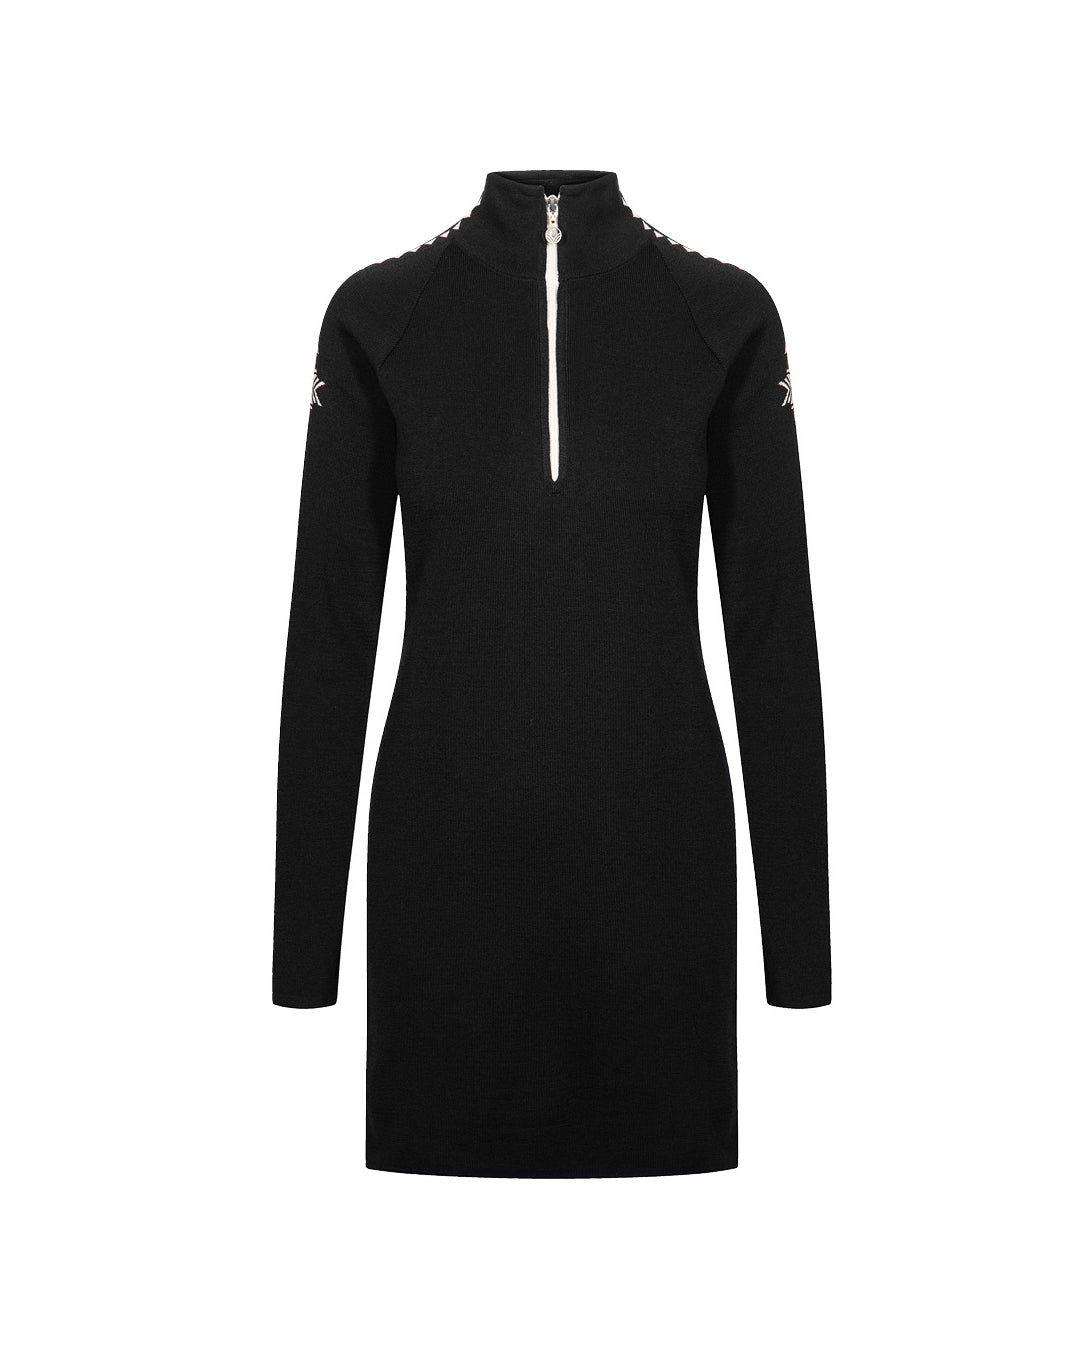 Geilo Knit Dress